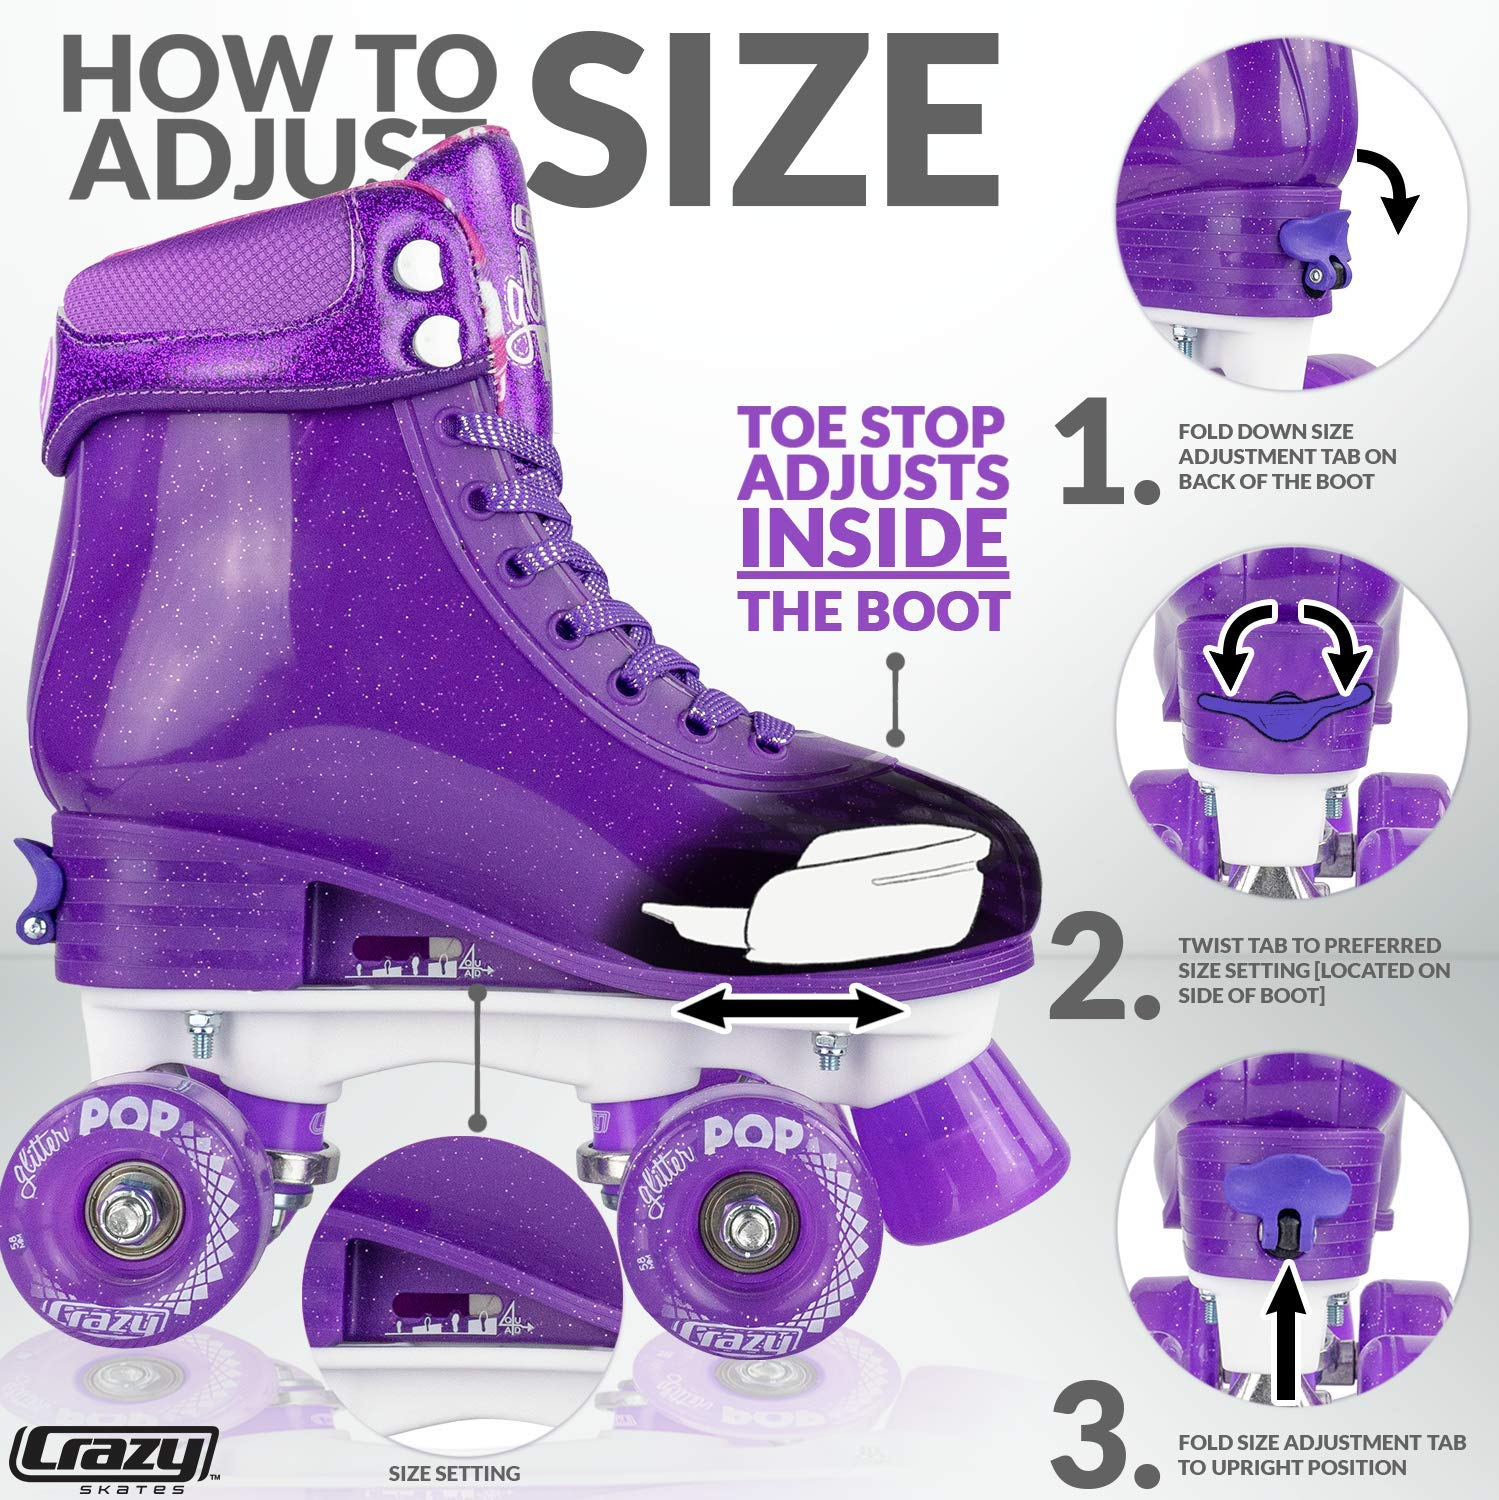 Crazy Skates Glitter POP Adjustable Roller Skates for Girls and Boys | Size Adjustable Quad Skates That Fit 4 Shoe Sizes | Purple (Sizes 3-6) by Crazy Skates (Image #3)